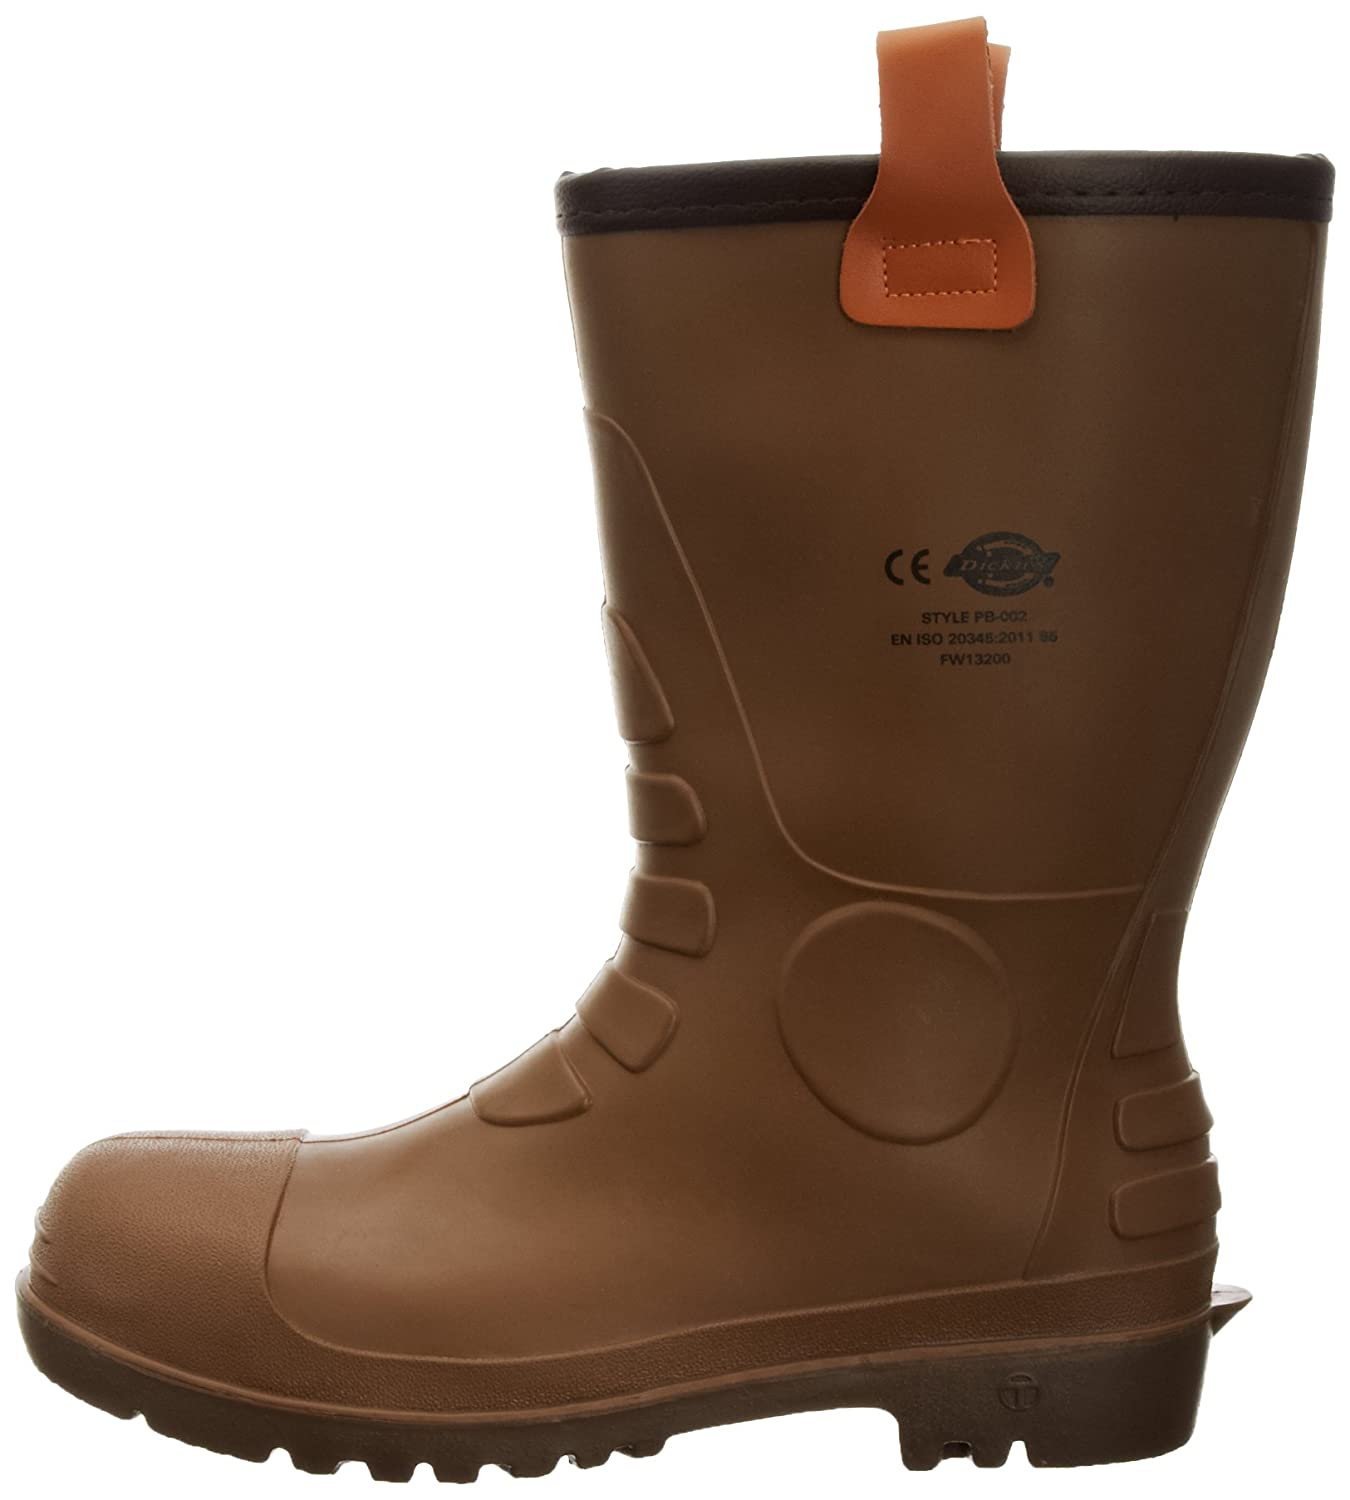 e4764f1387b4bd Dickies Groundwater Super Safety, Bottes en caoutchouc homme, Marron  (Brown), 40 EU ( 6 UK): Amazon.fr: Commerce, Industrie & Science